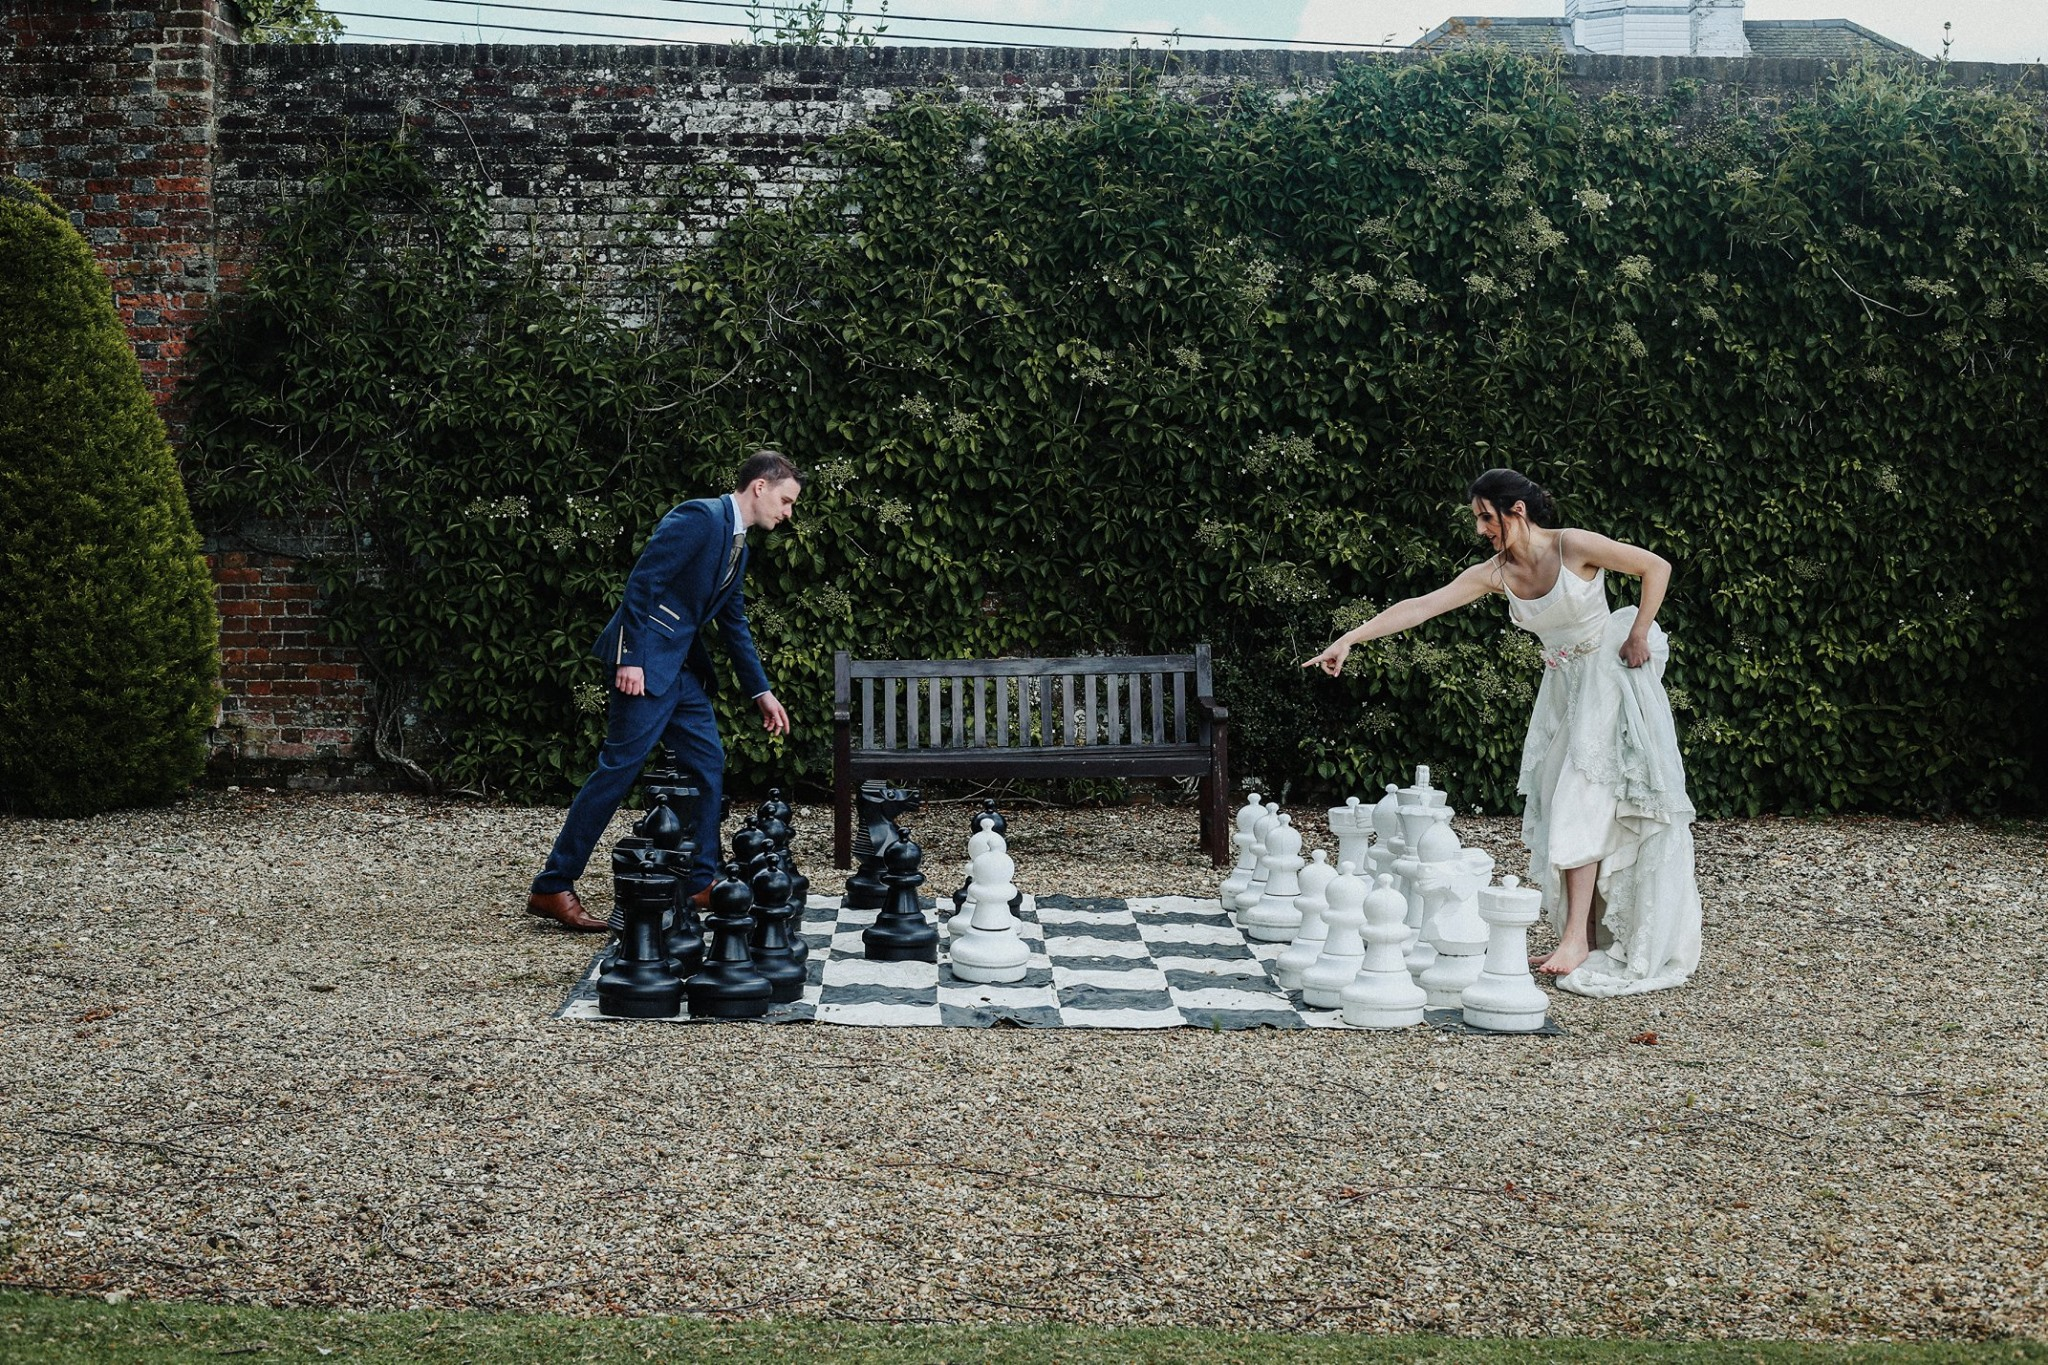 Bride and groom giant playing giant chess